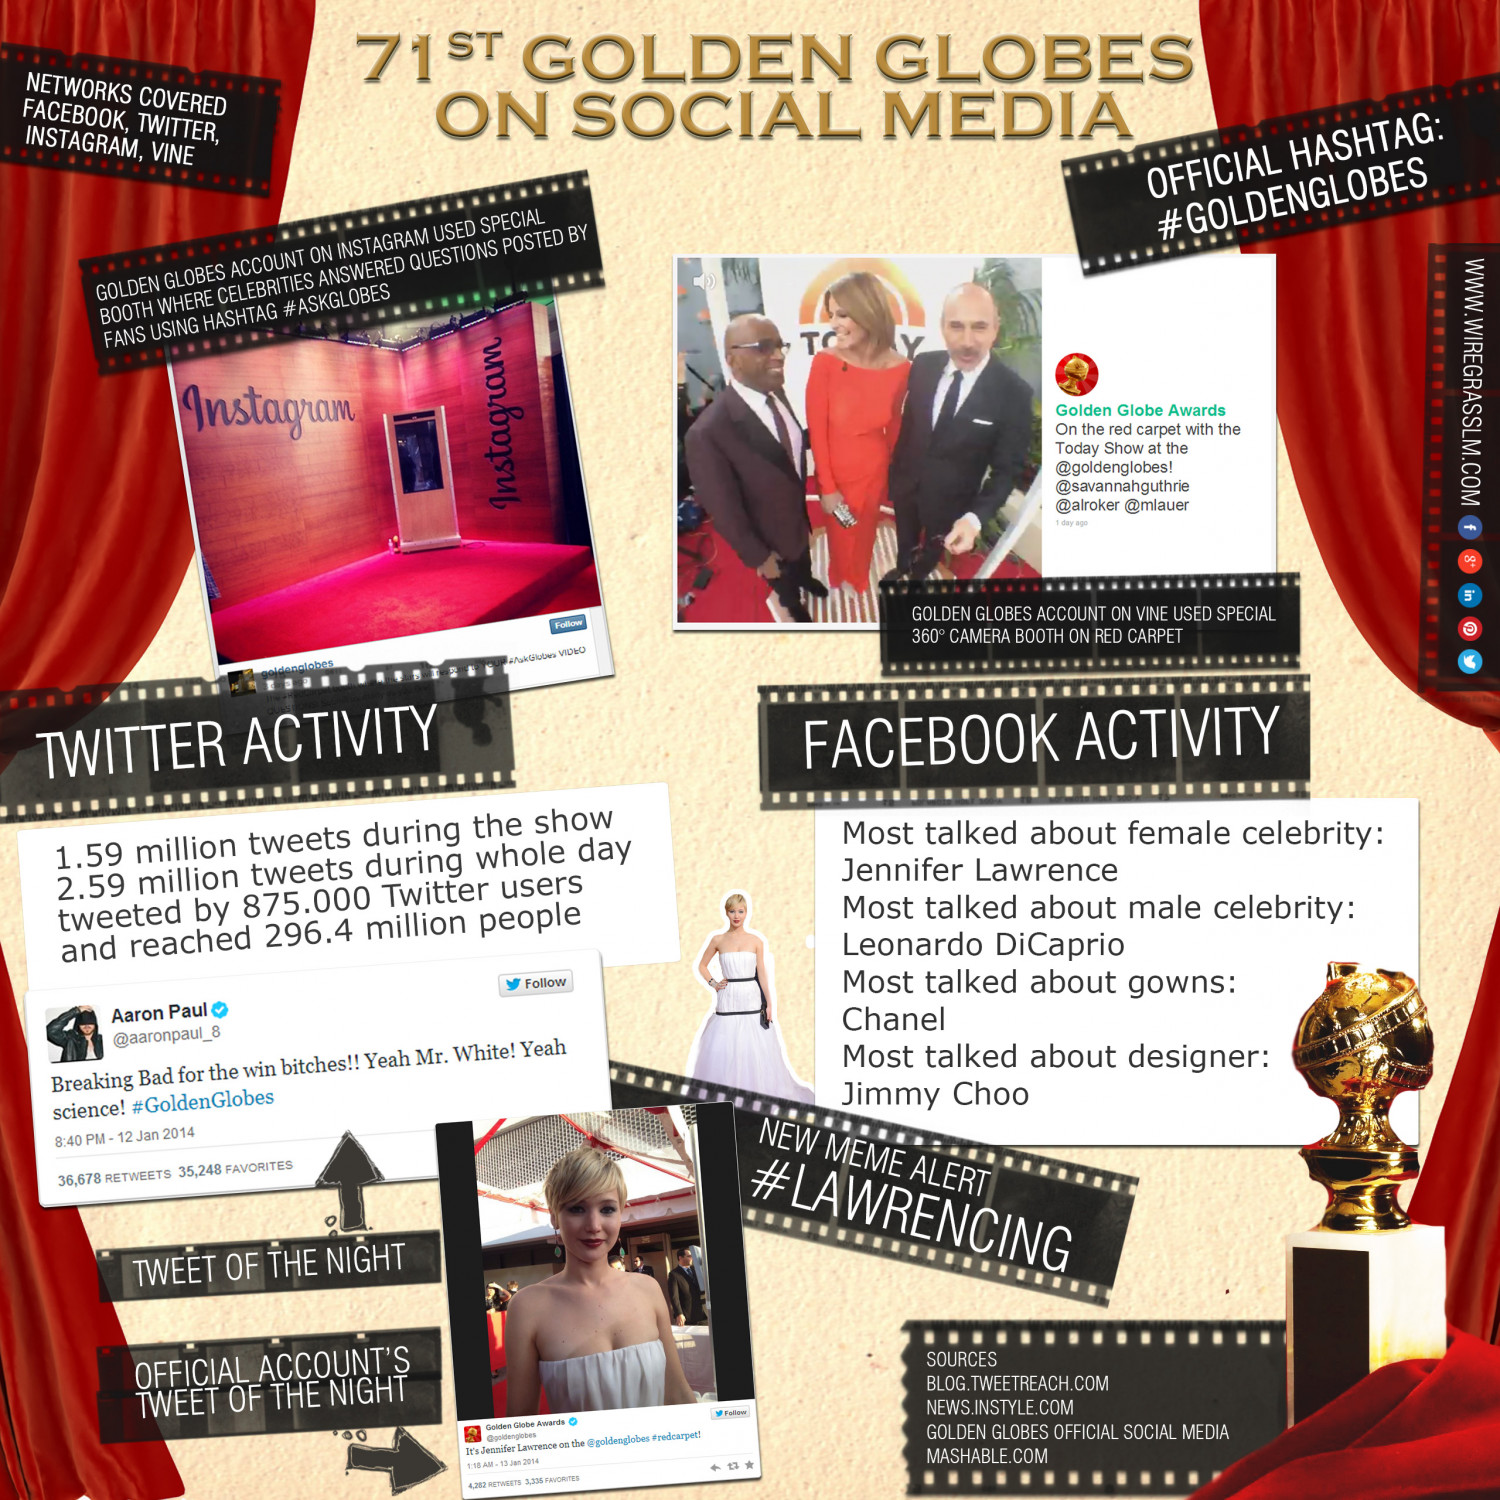 71st Golden Globes on Social Media Infographic